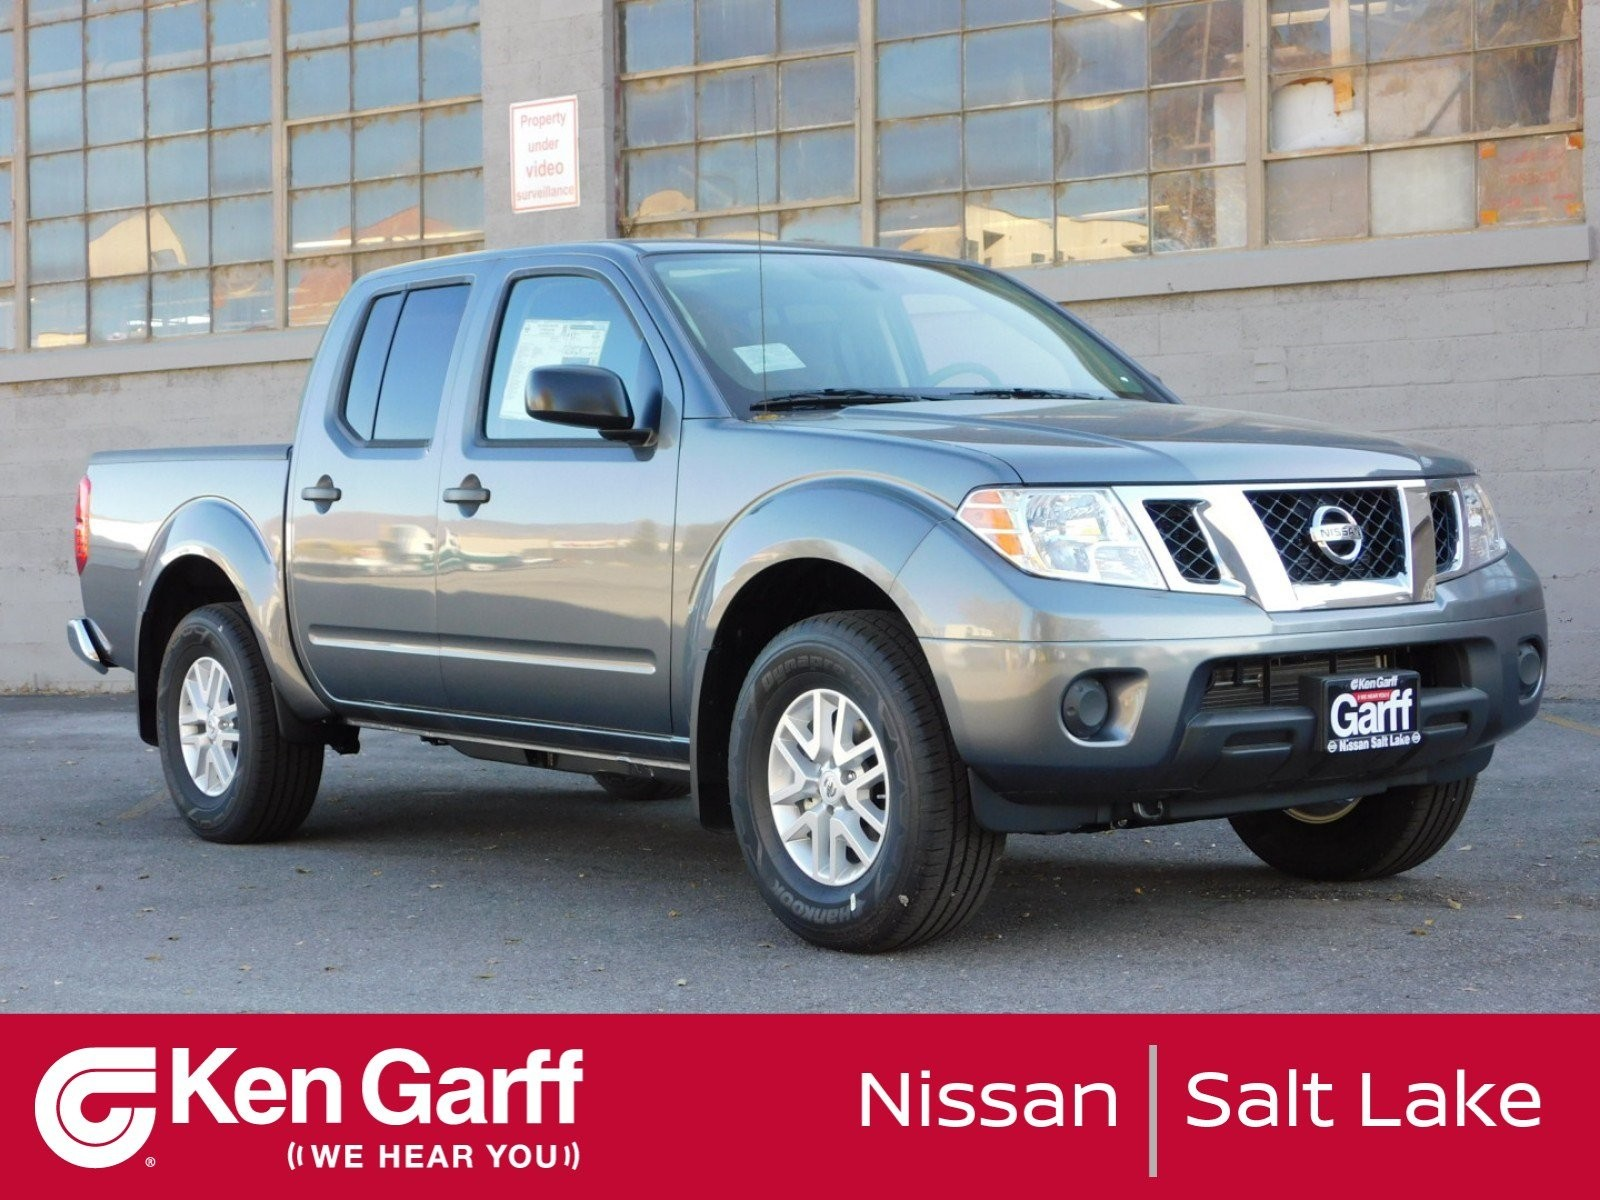 Nissan Truck Parts Diagram New 2019 Nissan Frontier Sv Crew Cab Pickup In Salt Lake City Of Nissan Truck Parts Diagram New 2018 Nissan Frontier Sv V6 Crew Cab Pickup In Salt Lake City